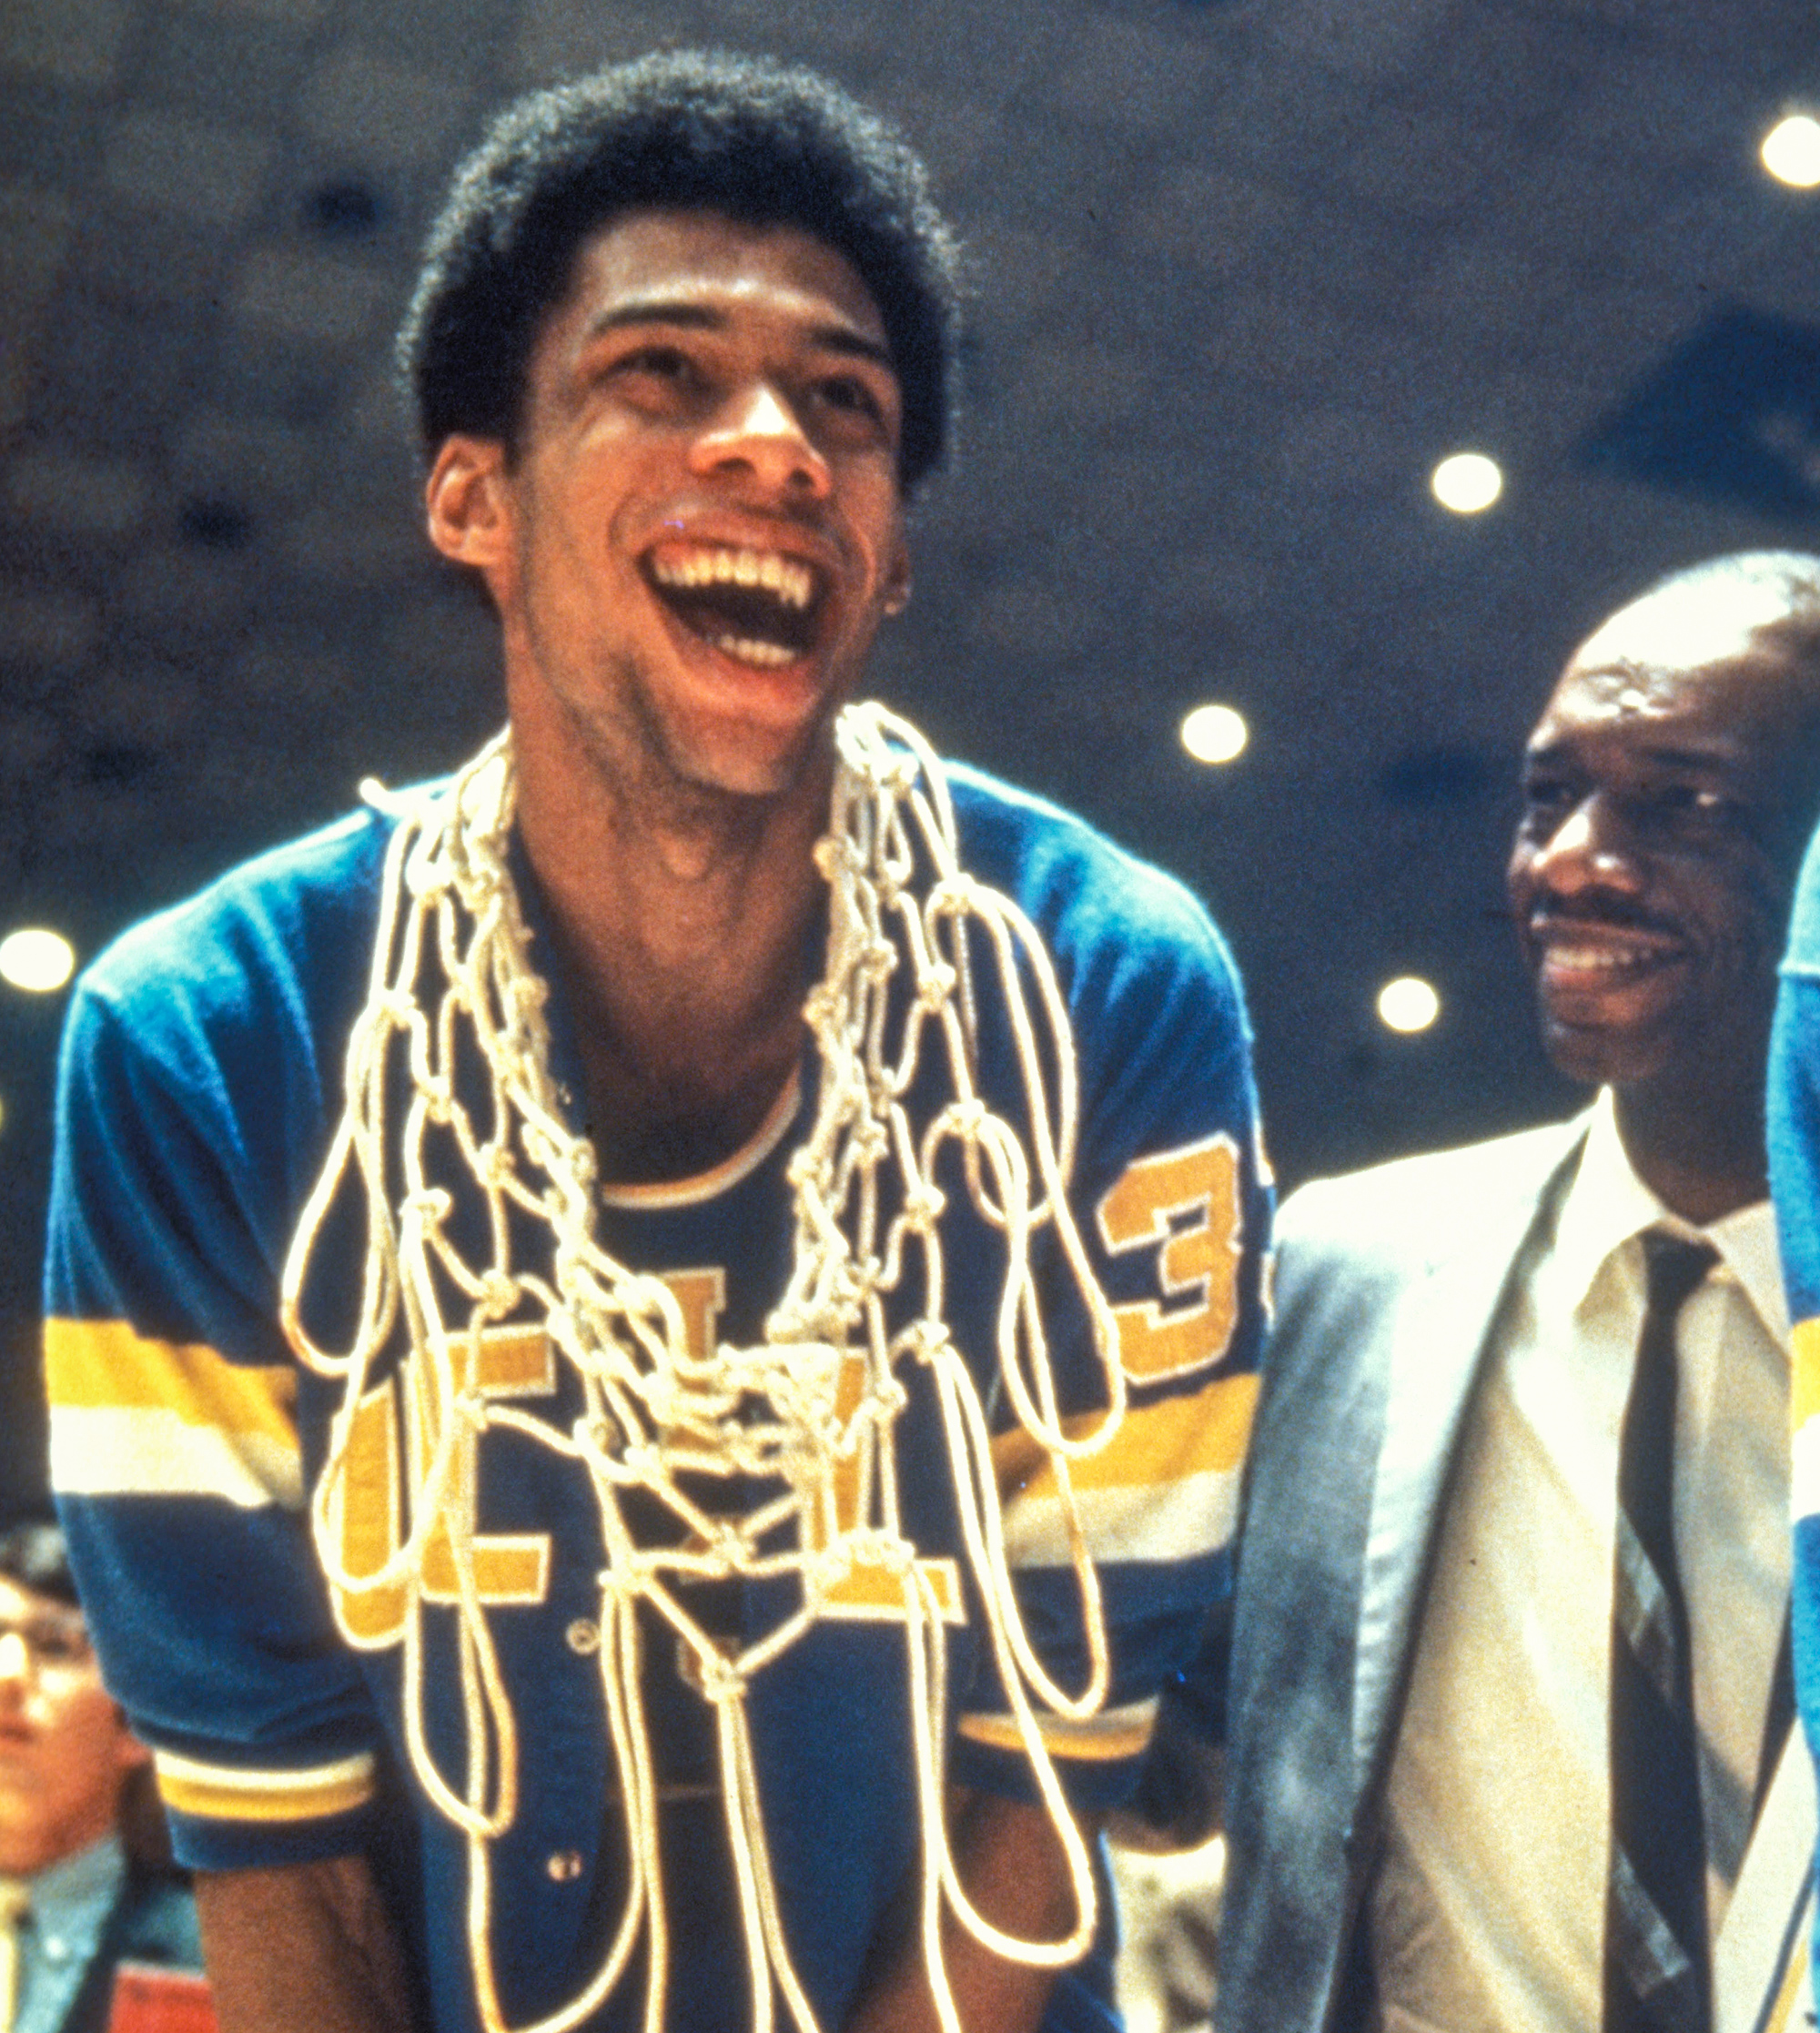 50 years ago, Alcindor and O J  were both leaving L A , but